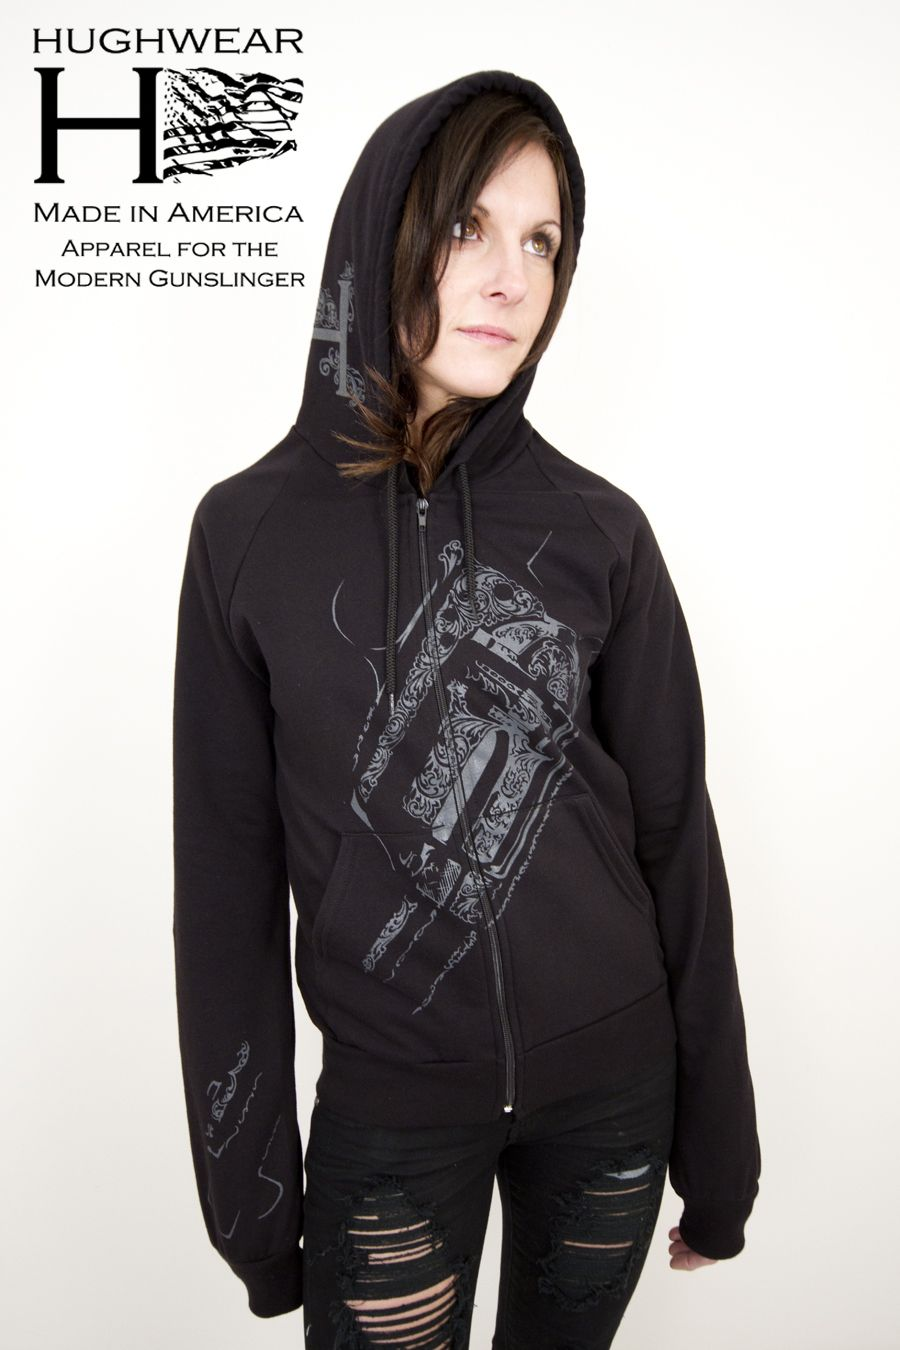 Embossed Women's Long-Sleeve Hooded Shirt #hughwear #badass #americanmade #gunz #USA #black www.hughwear.com